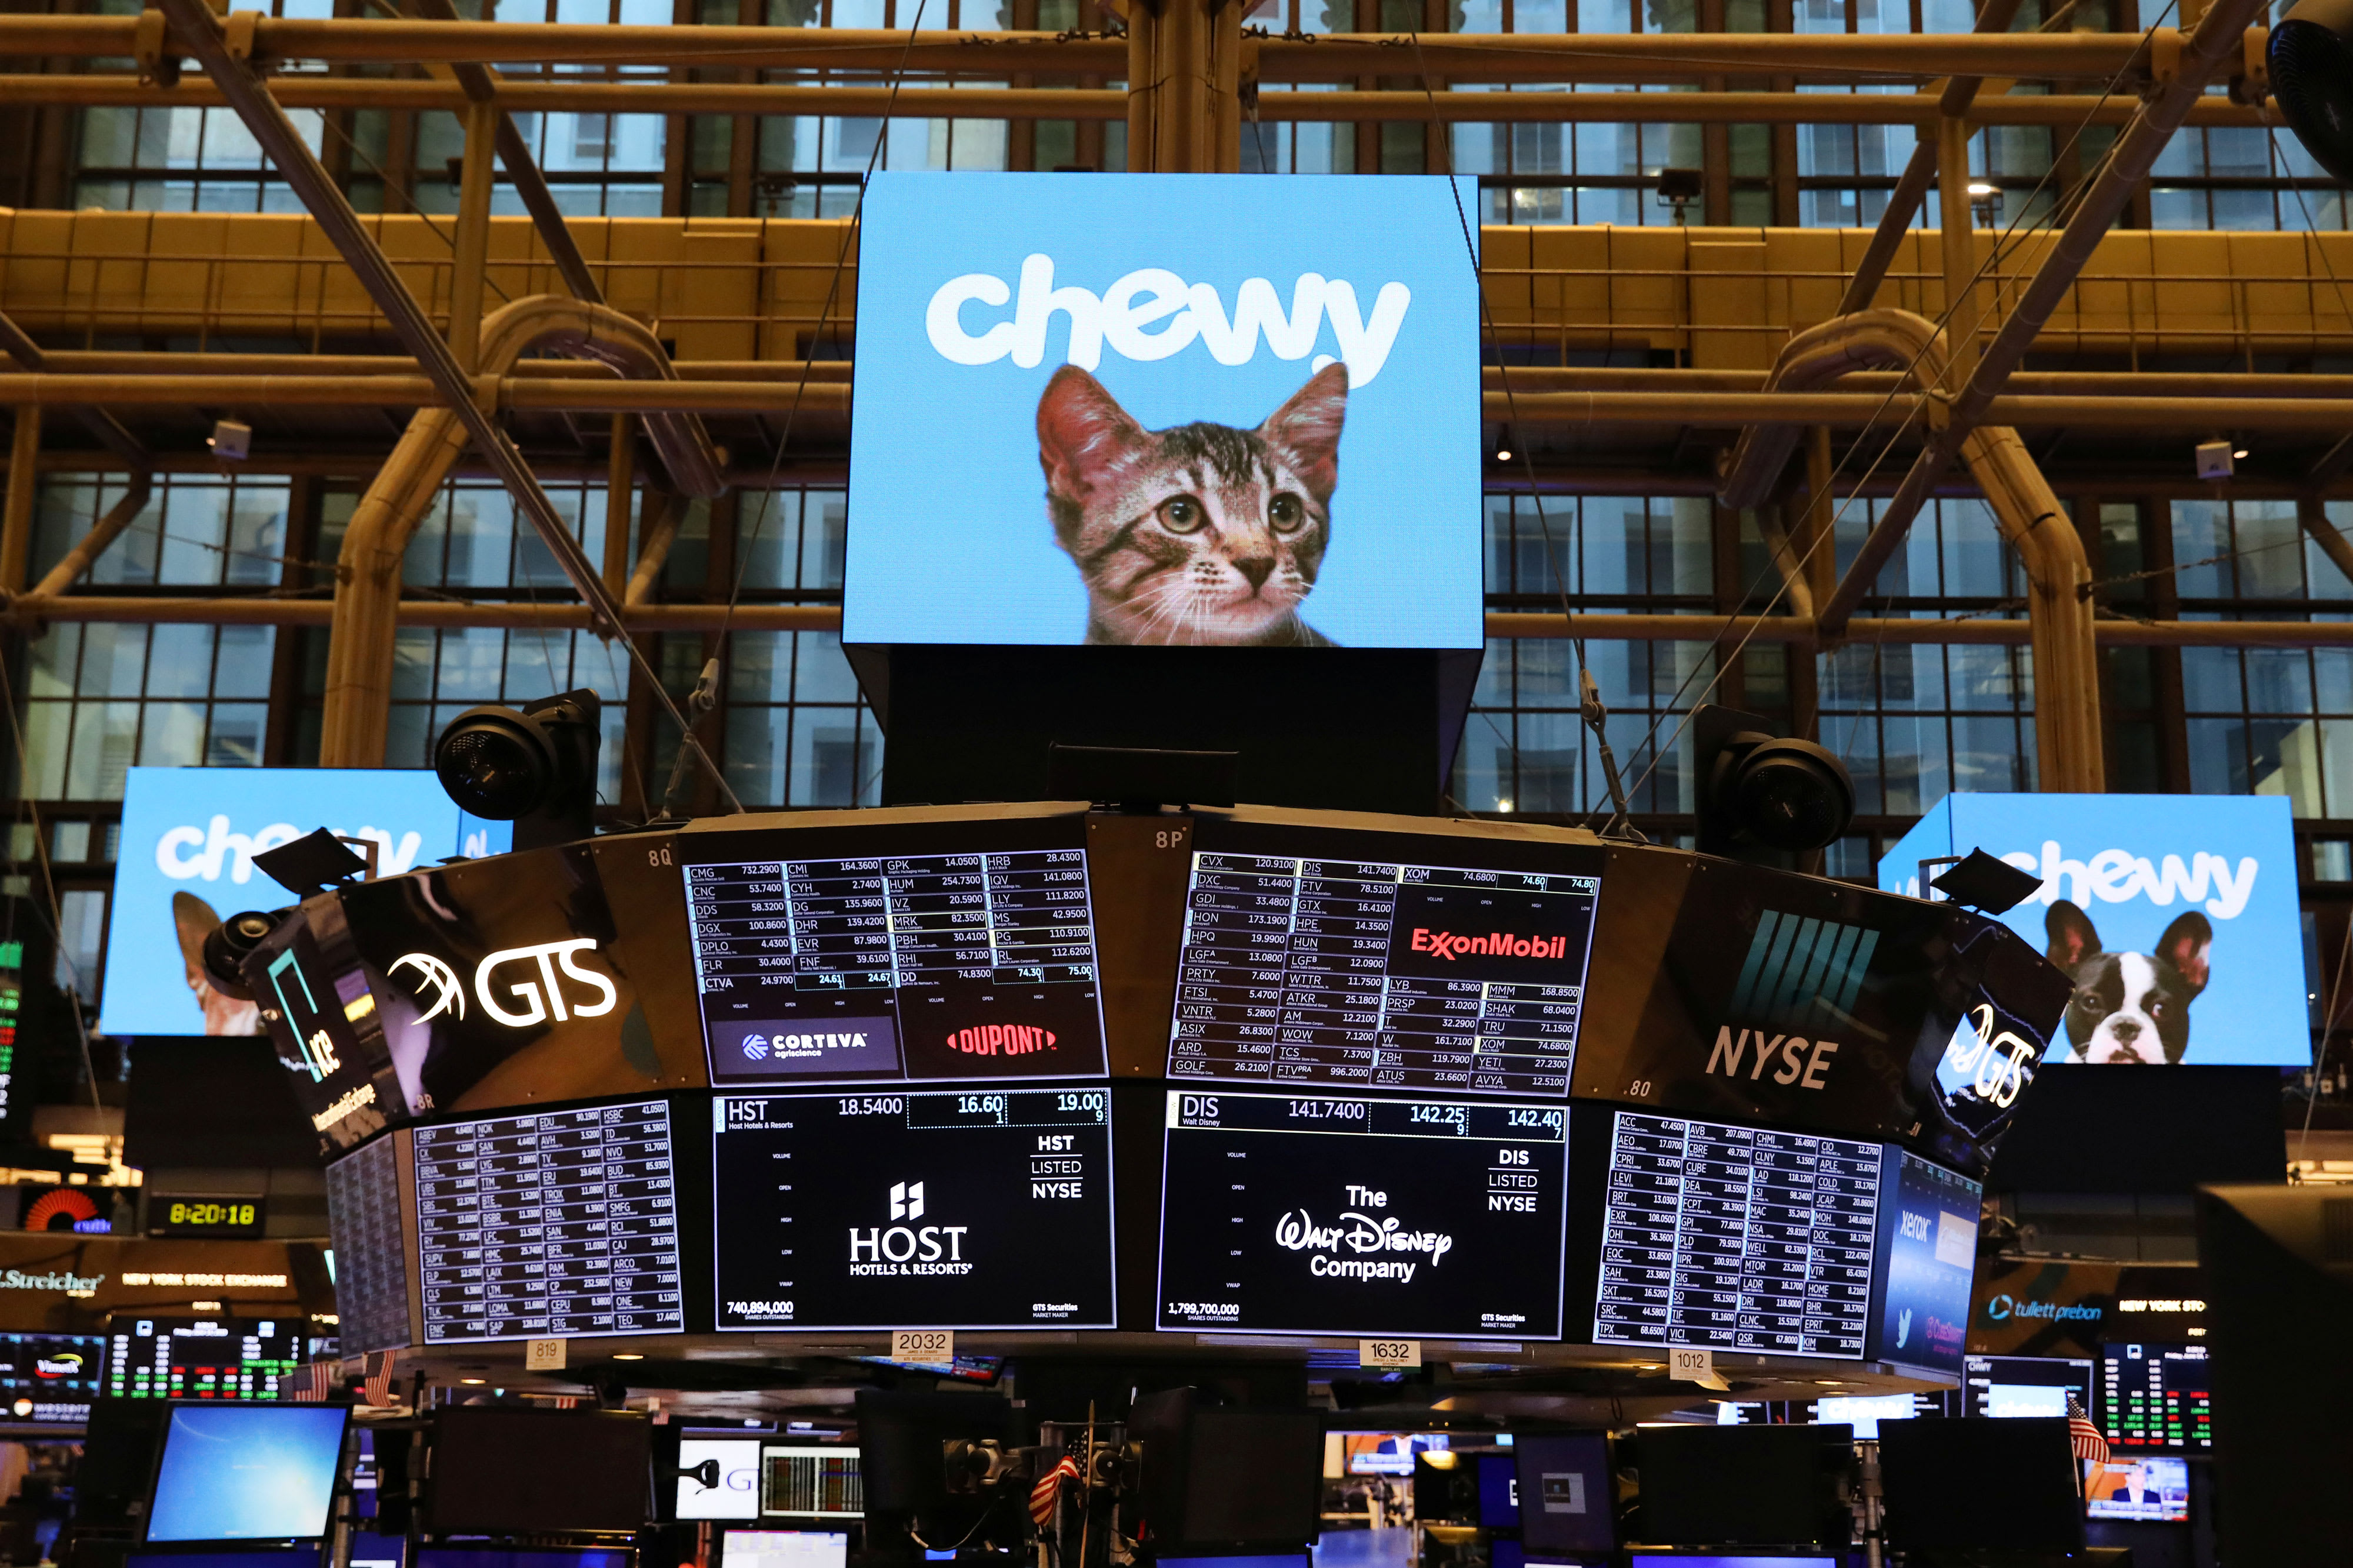 Chewy shares slide despite narrower-than-expected second quarter loss